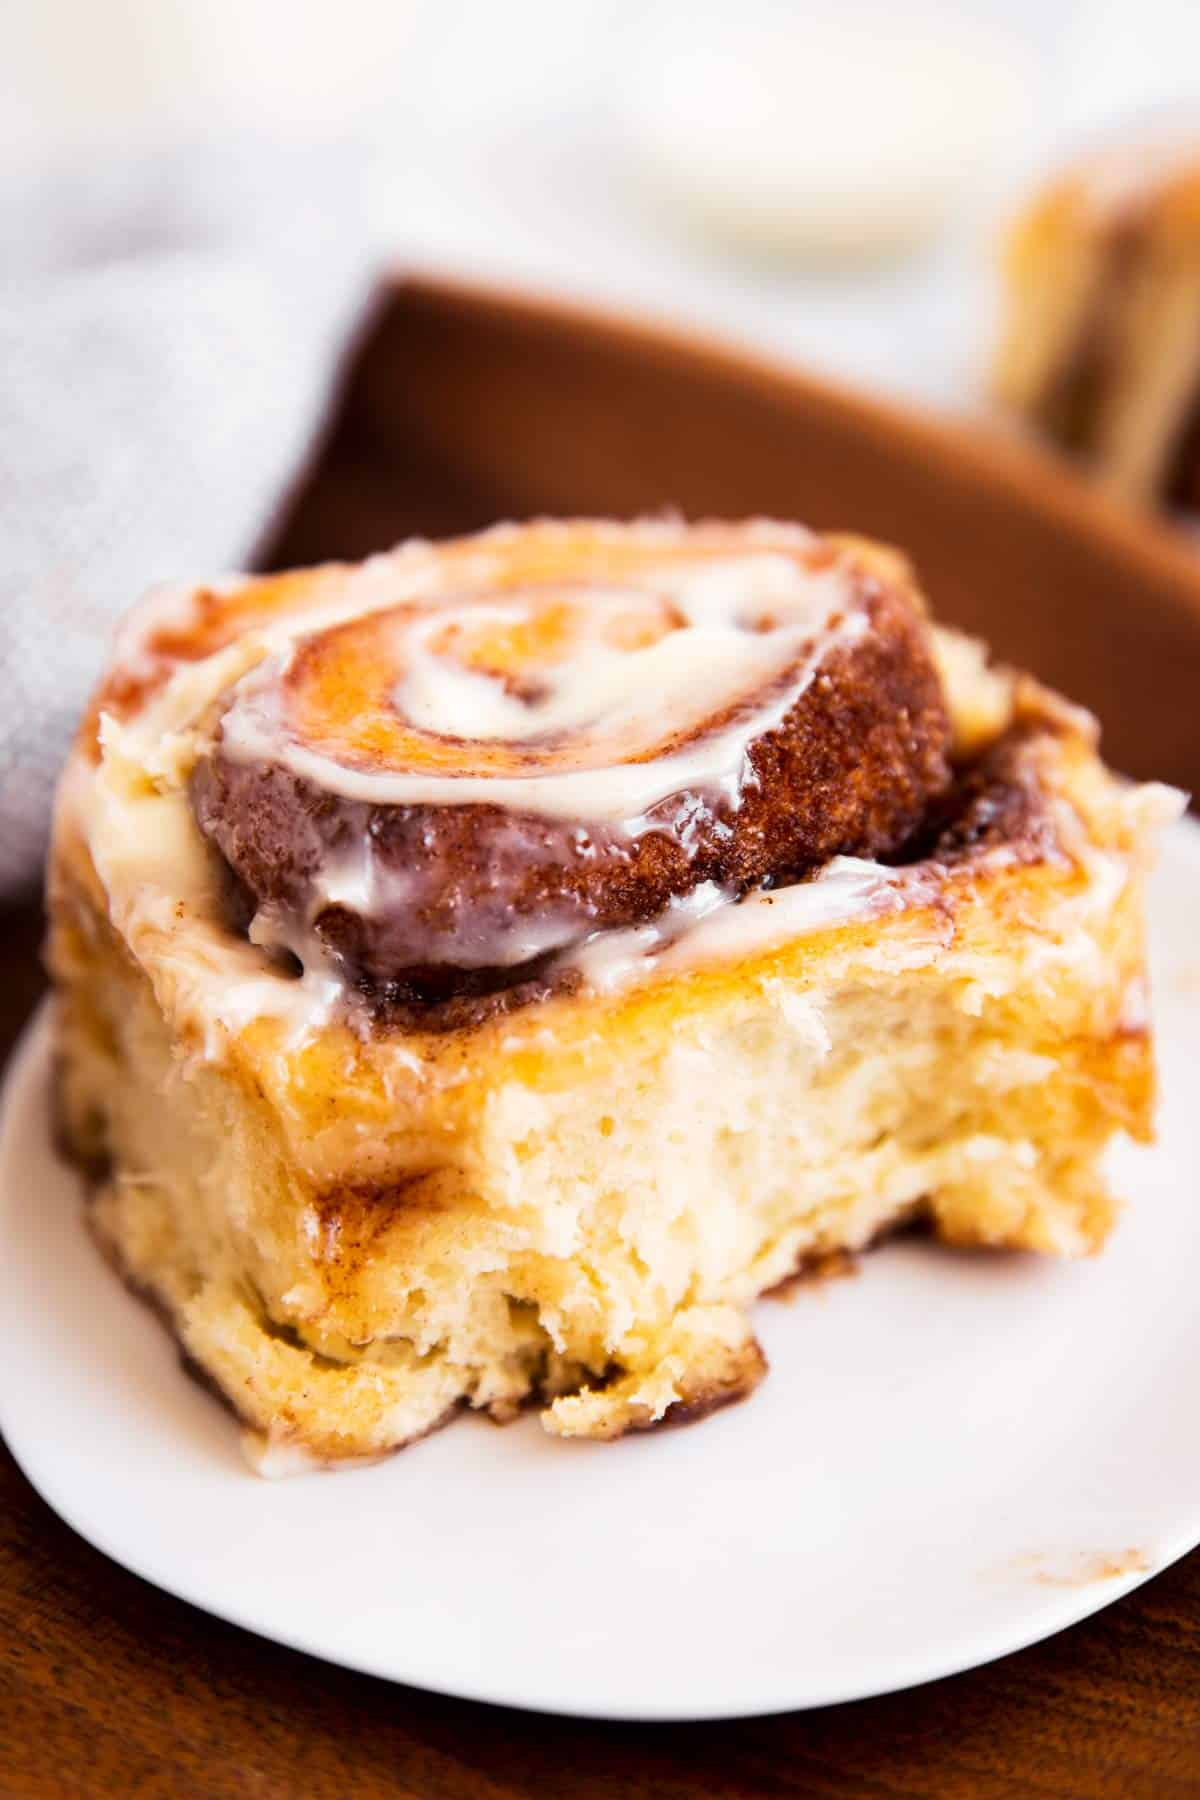 cinnamon roll sitting on white plate